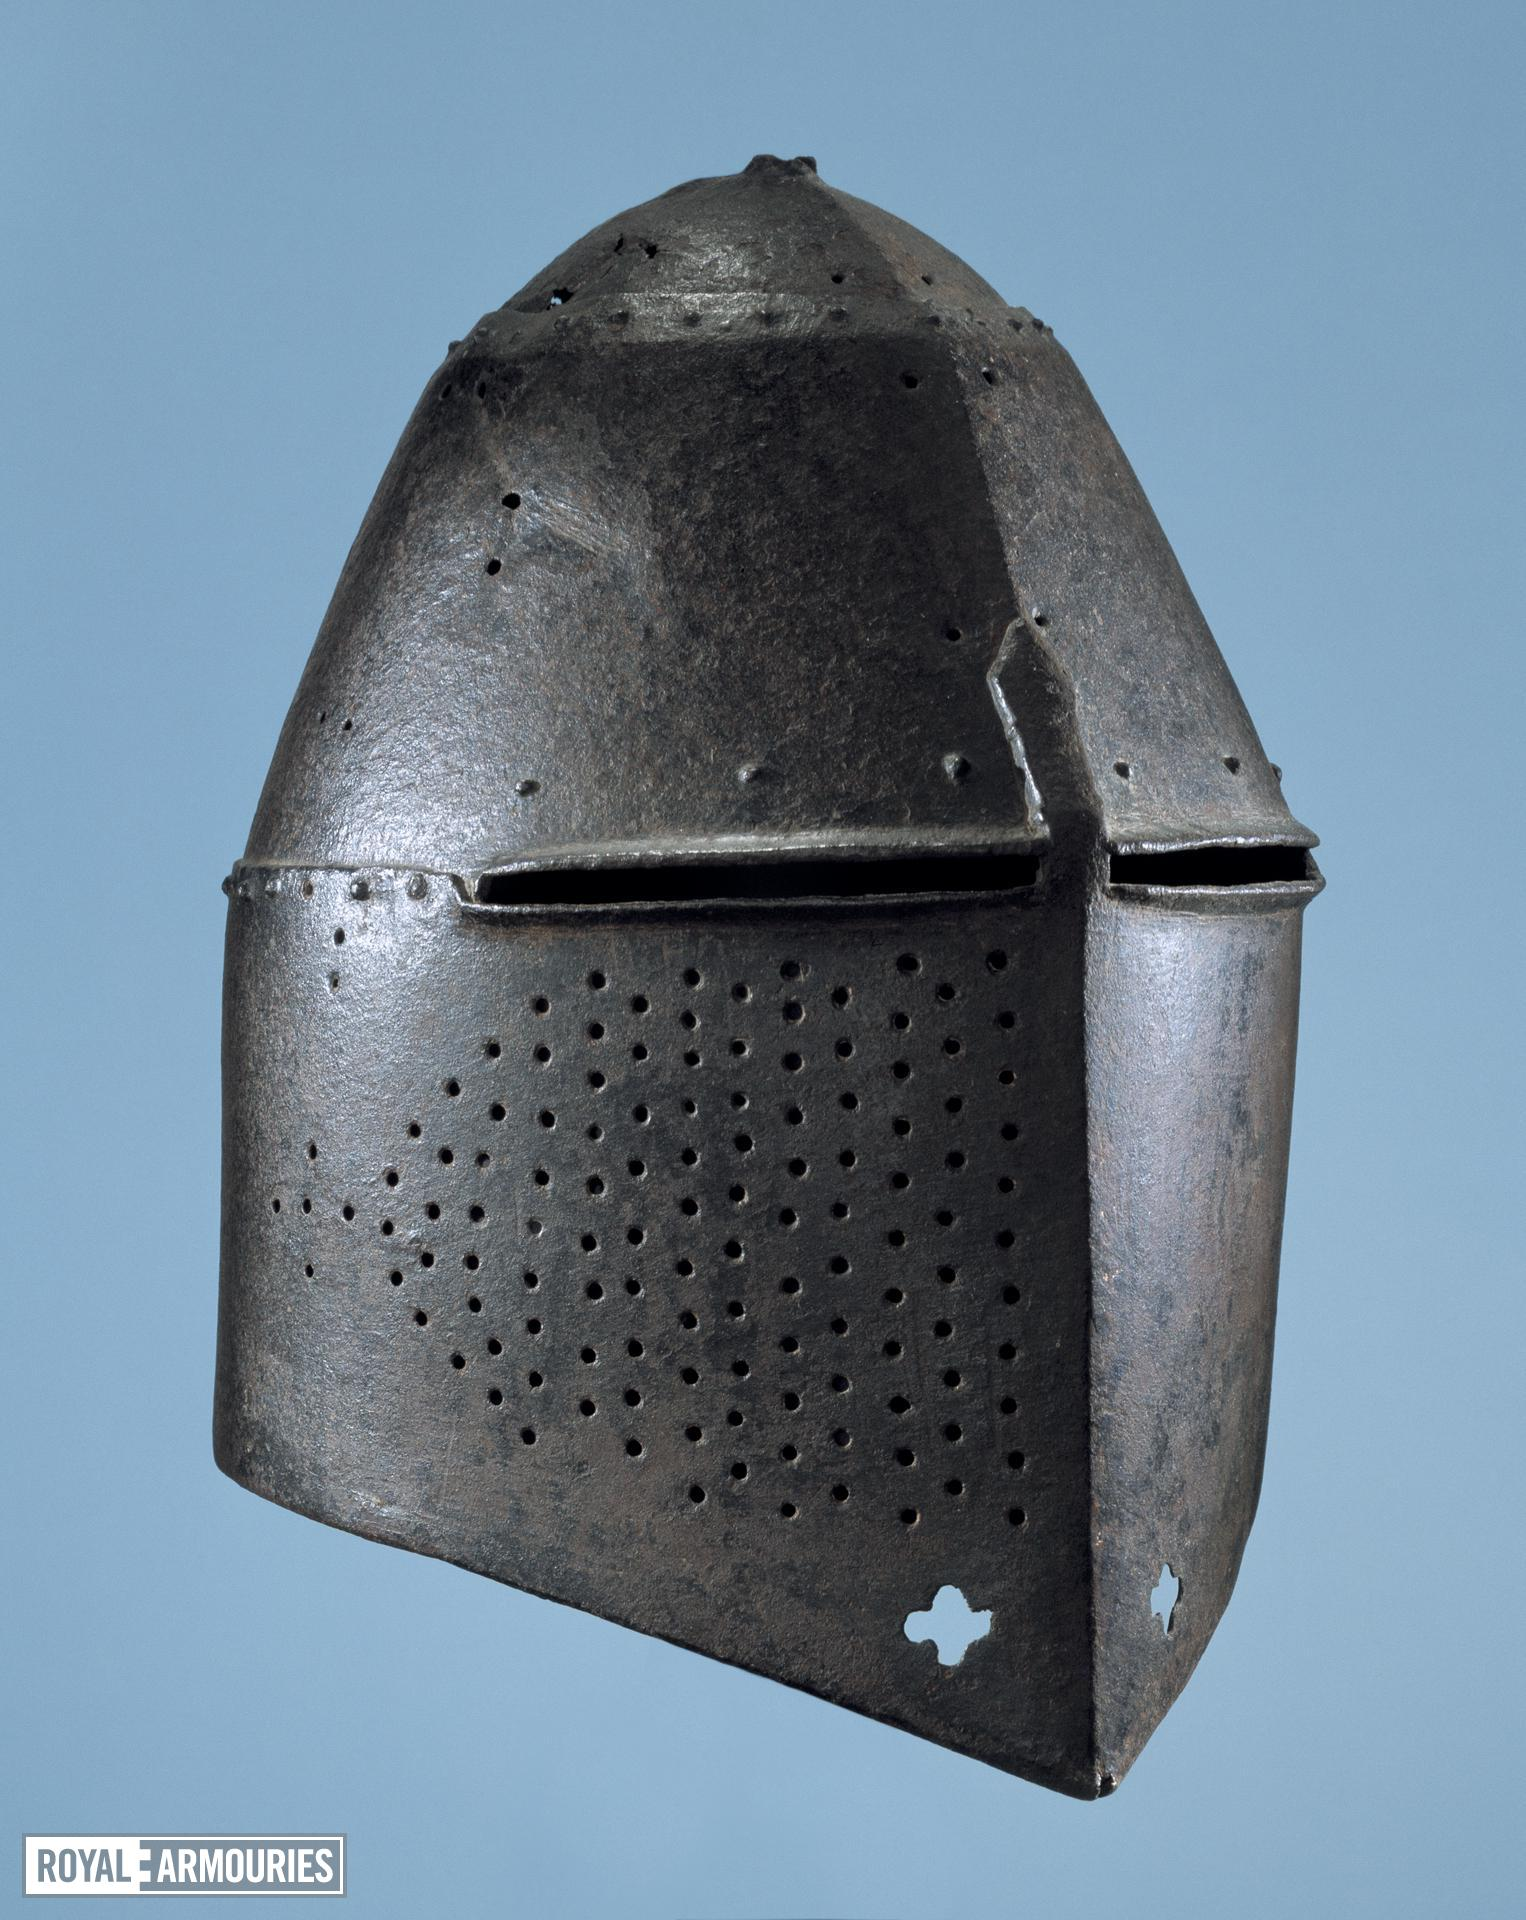 Helm - Great Helm Great helm used as funerary achievement